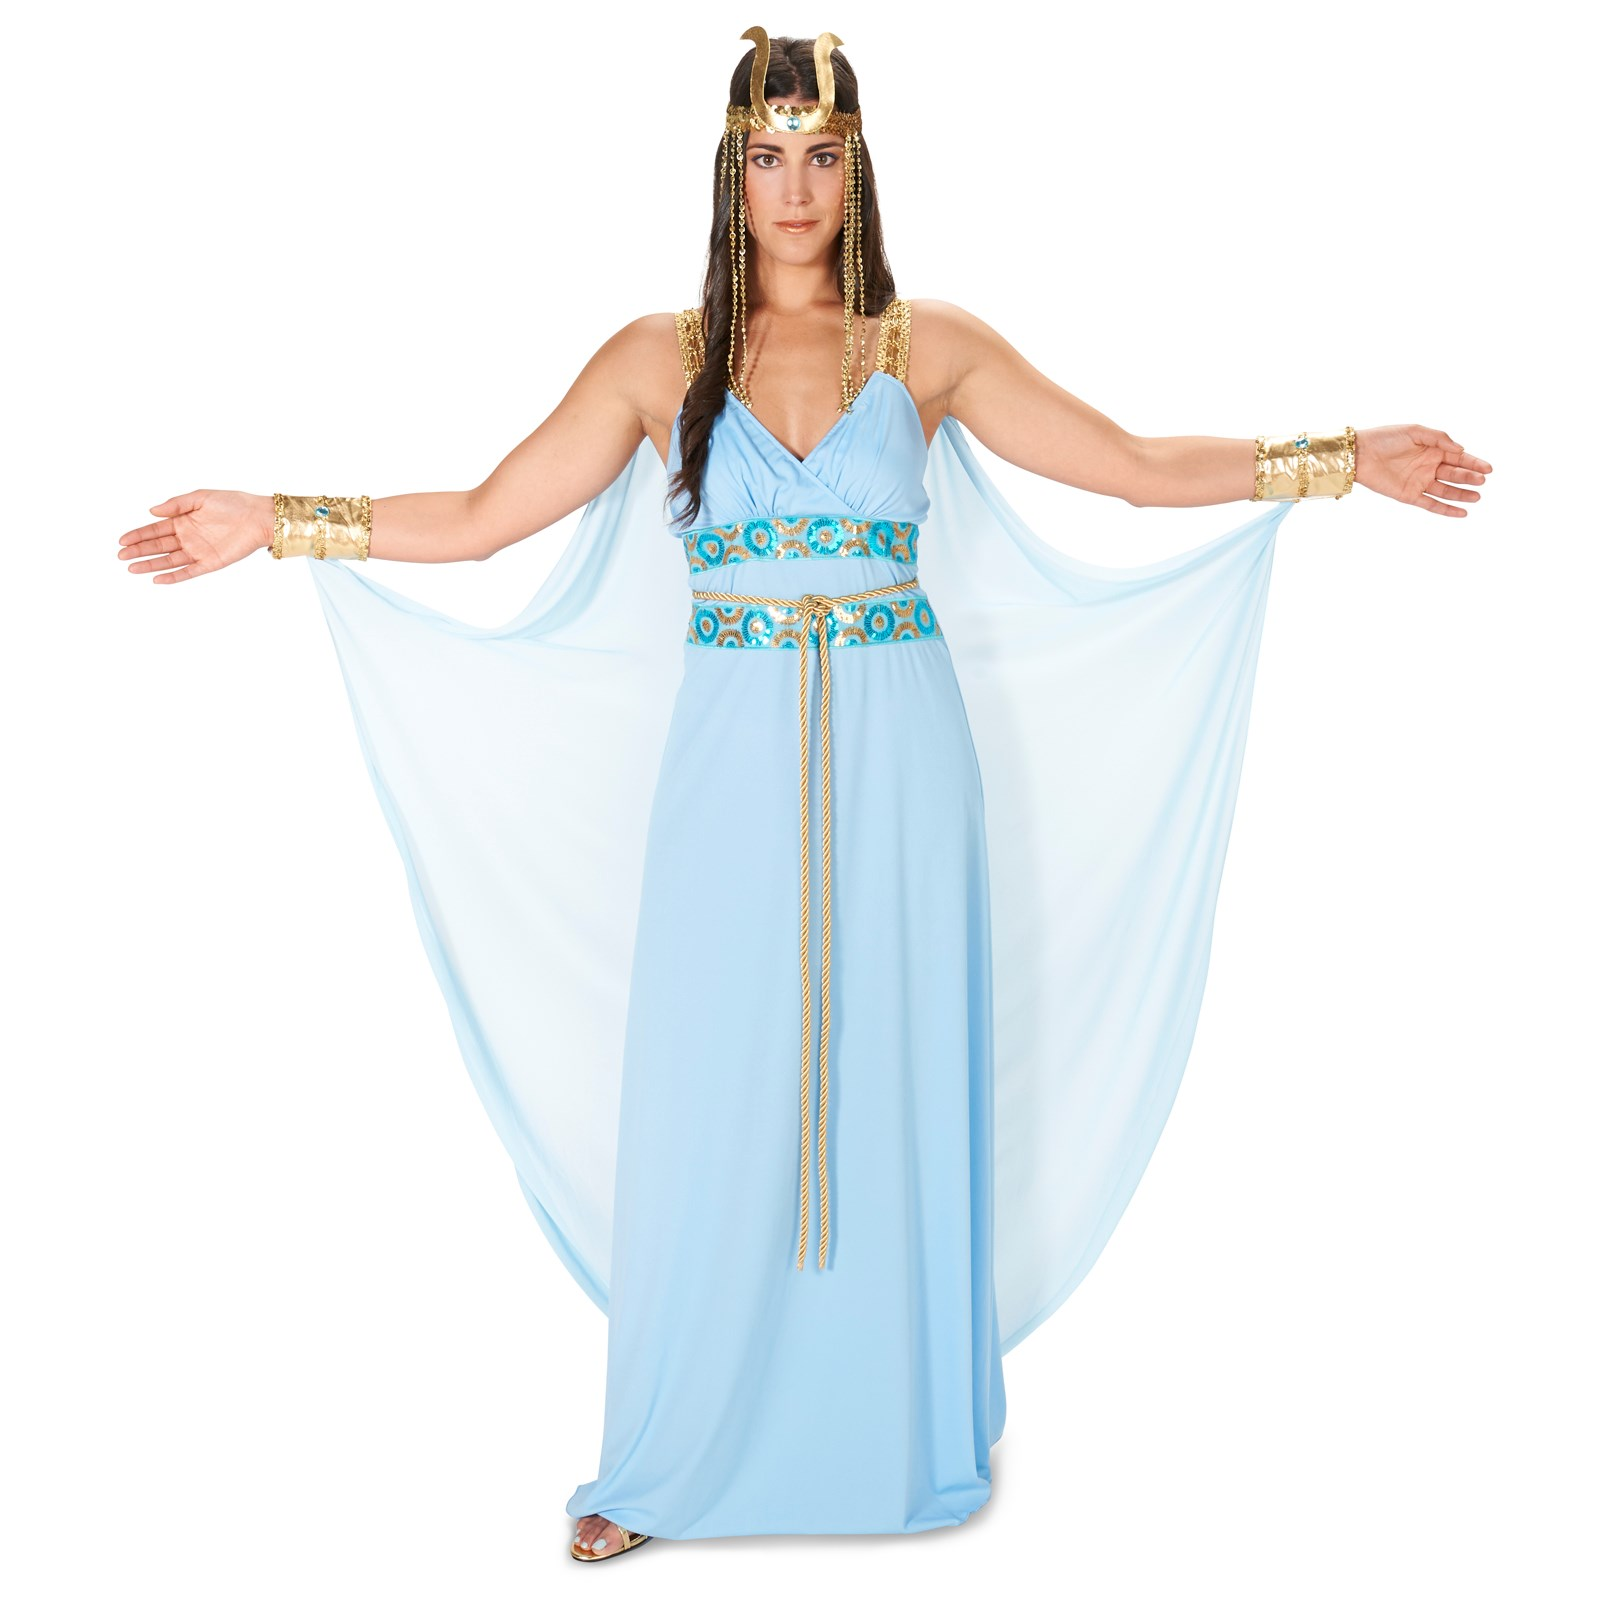 Home gt gt cleopatra costumes gt gt jewel of the nile egyptian adult - Egyptian Goddess Adult Costume